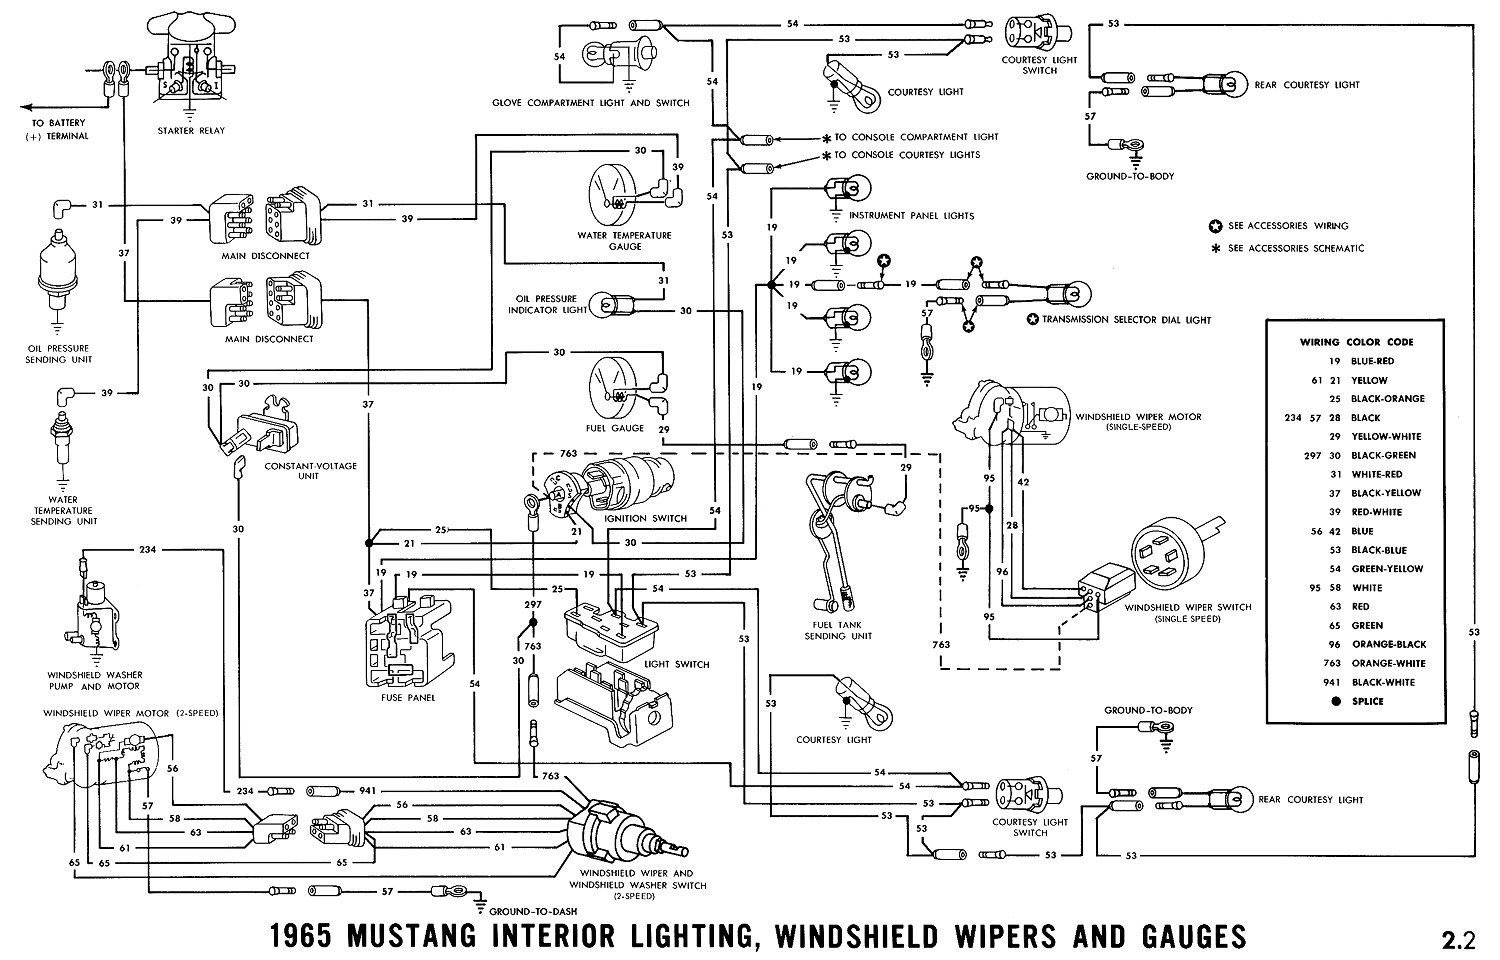 1965g 65 mustang wiring diagram 1965 mustang alternator wiring \u2022 wiring 2000 Mustang Wiring Harness Diagram at bayanpartner.co